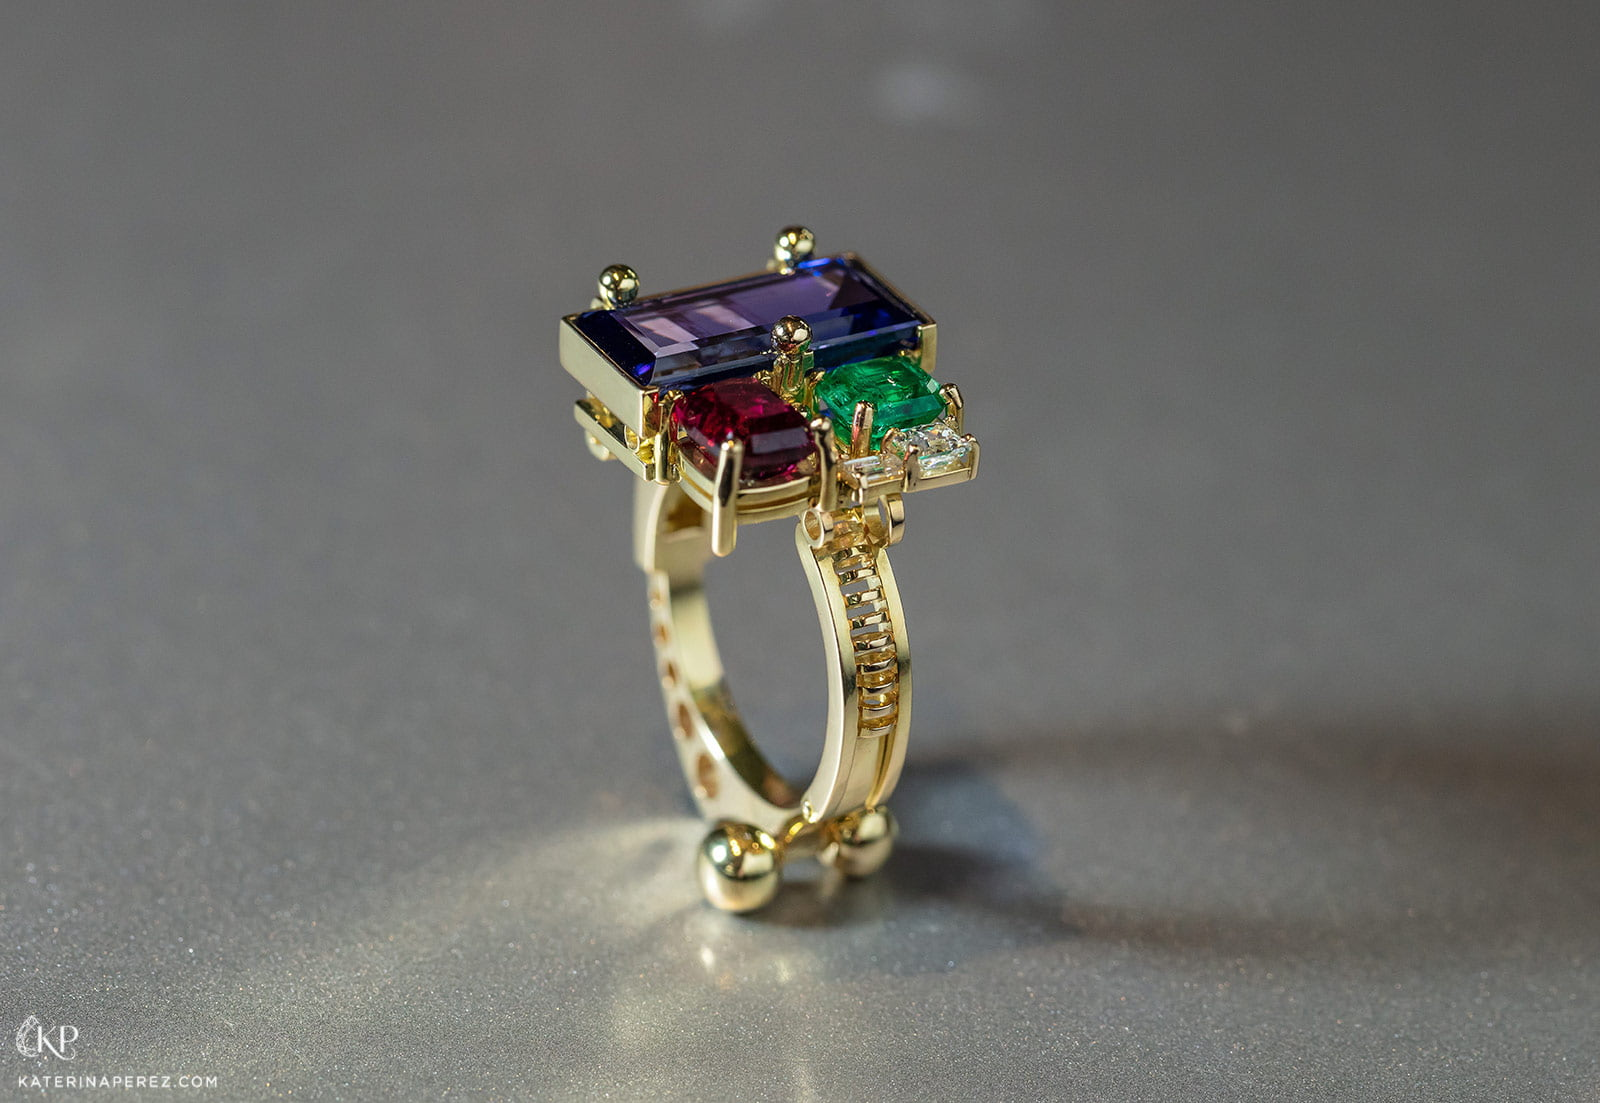 Milio Supremus ring with tanzanite, emerald, ruby and diamonds set in yellow gold